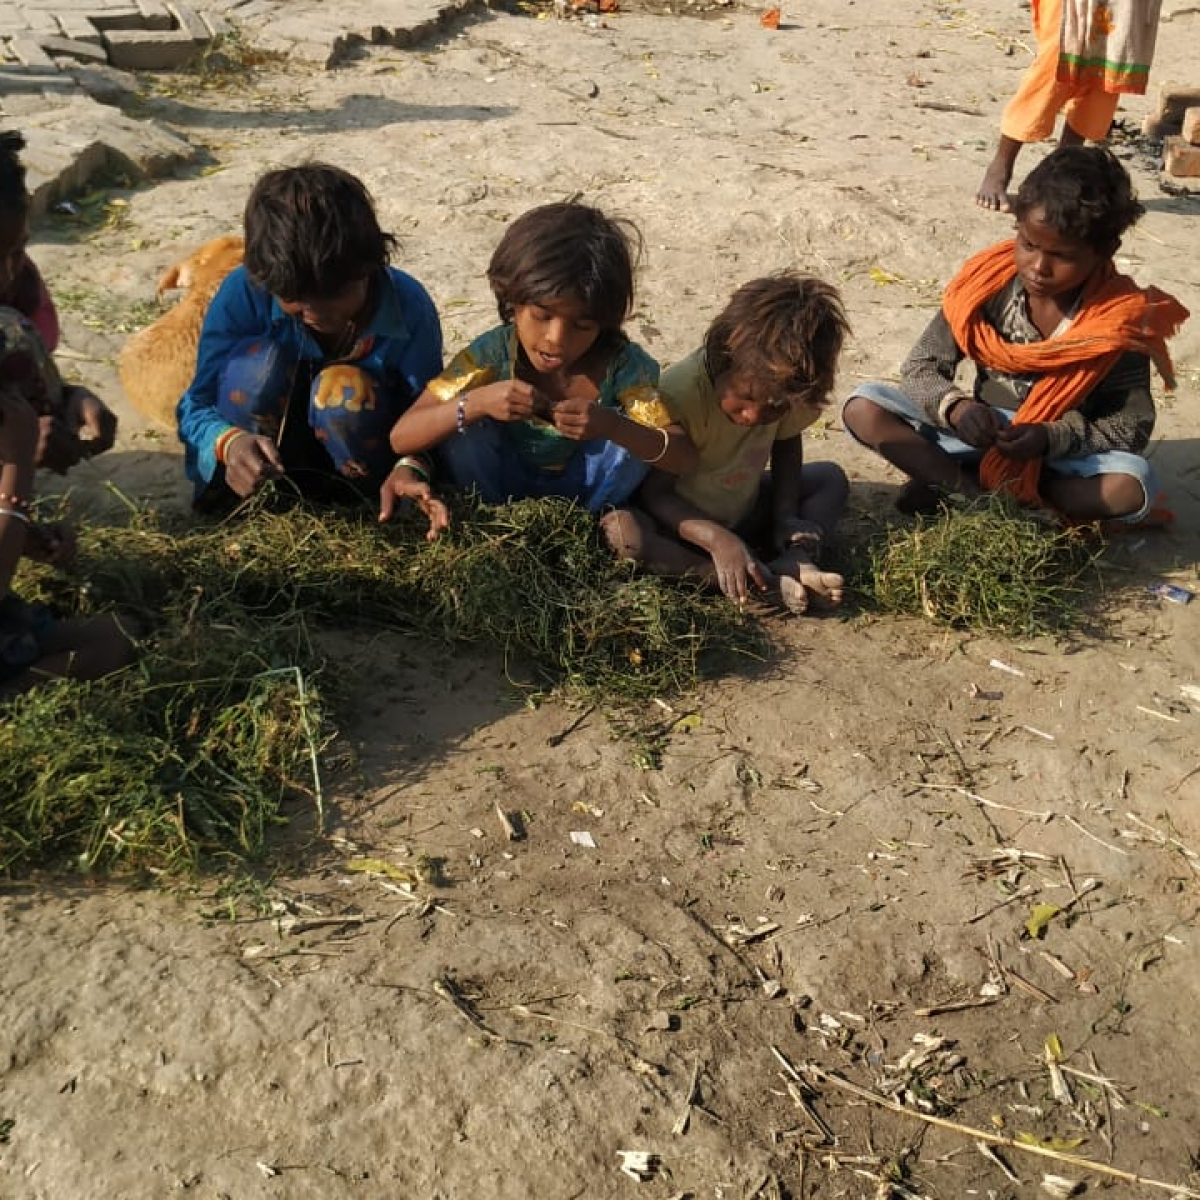 Lockdown impact: In Modi's constituency, Dalit kids forced to eat grass, reporter faces DM's wrath